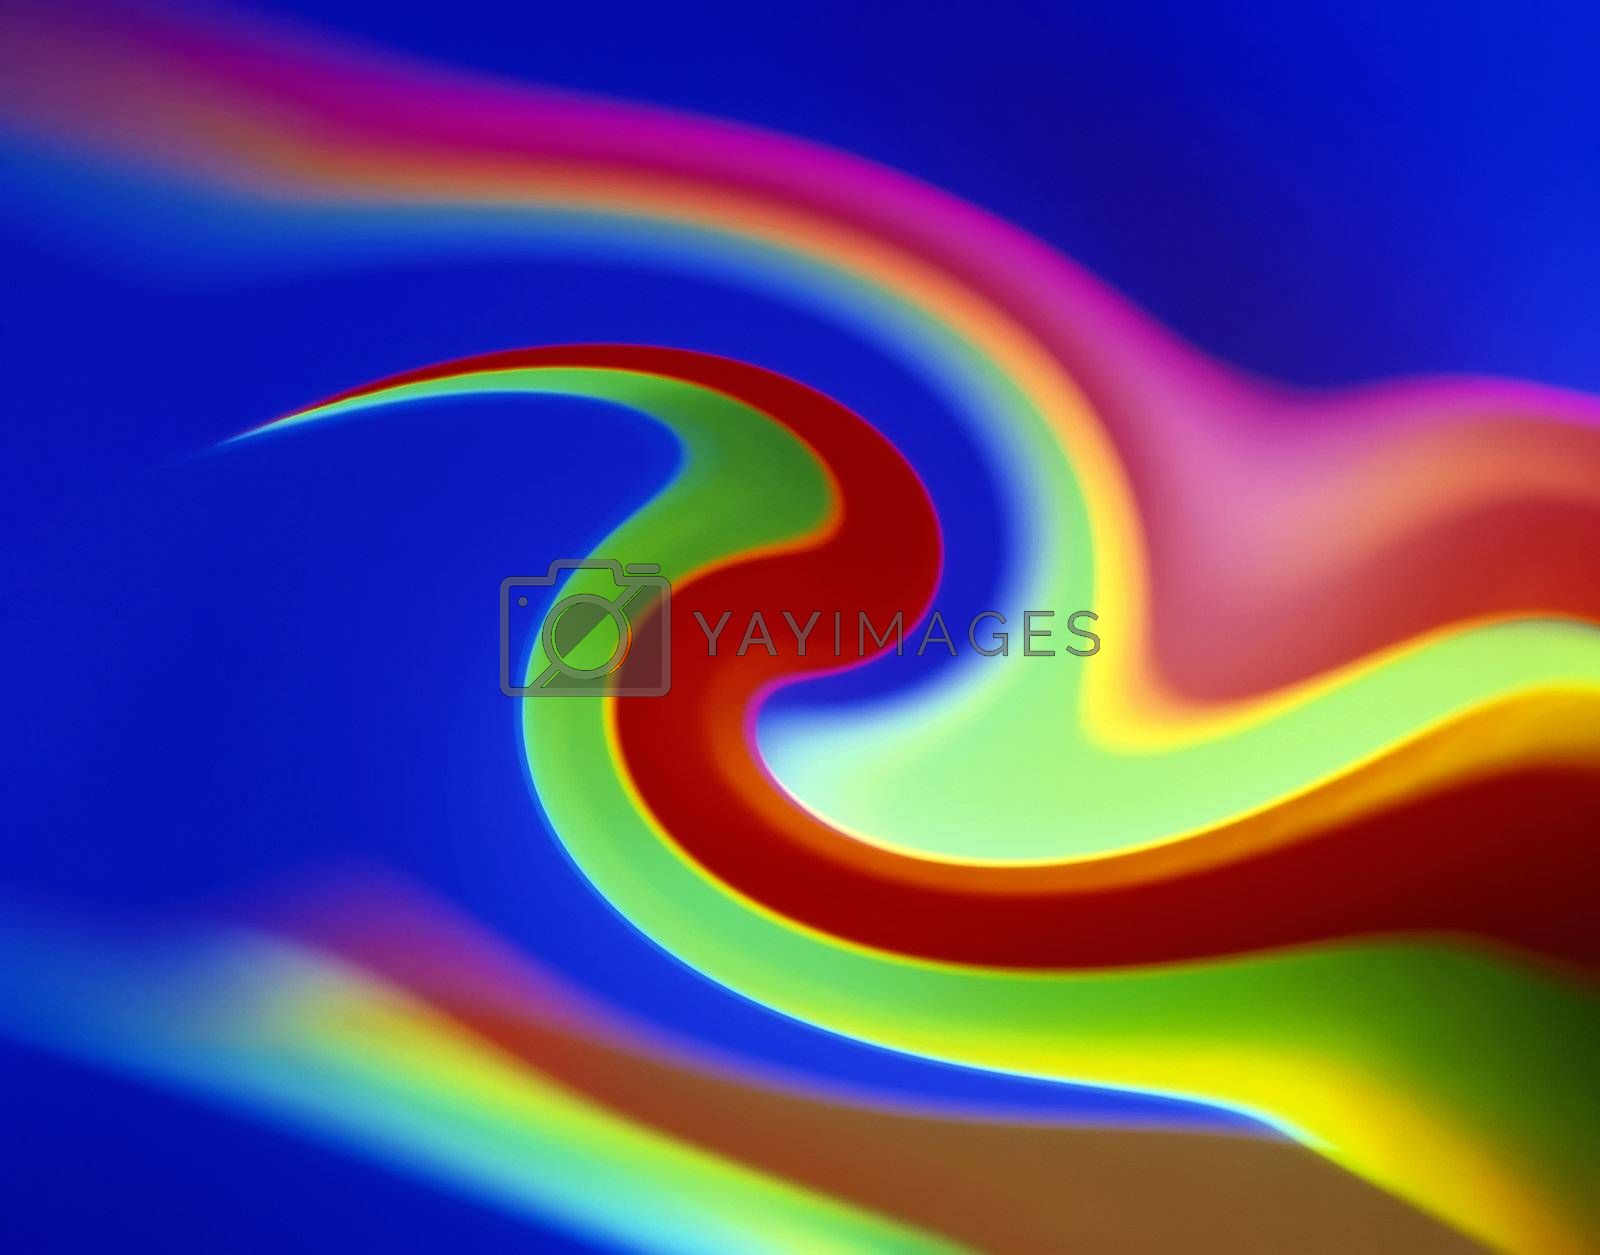 Colorful abstract background with curves and waves